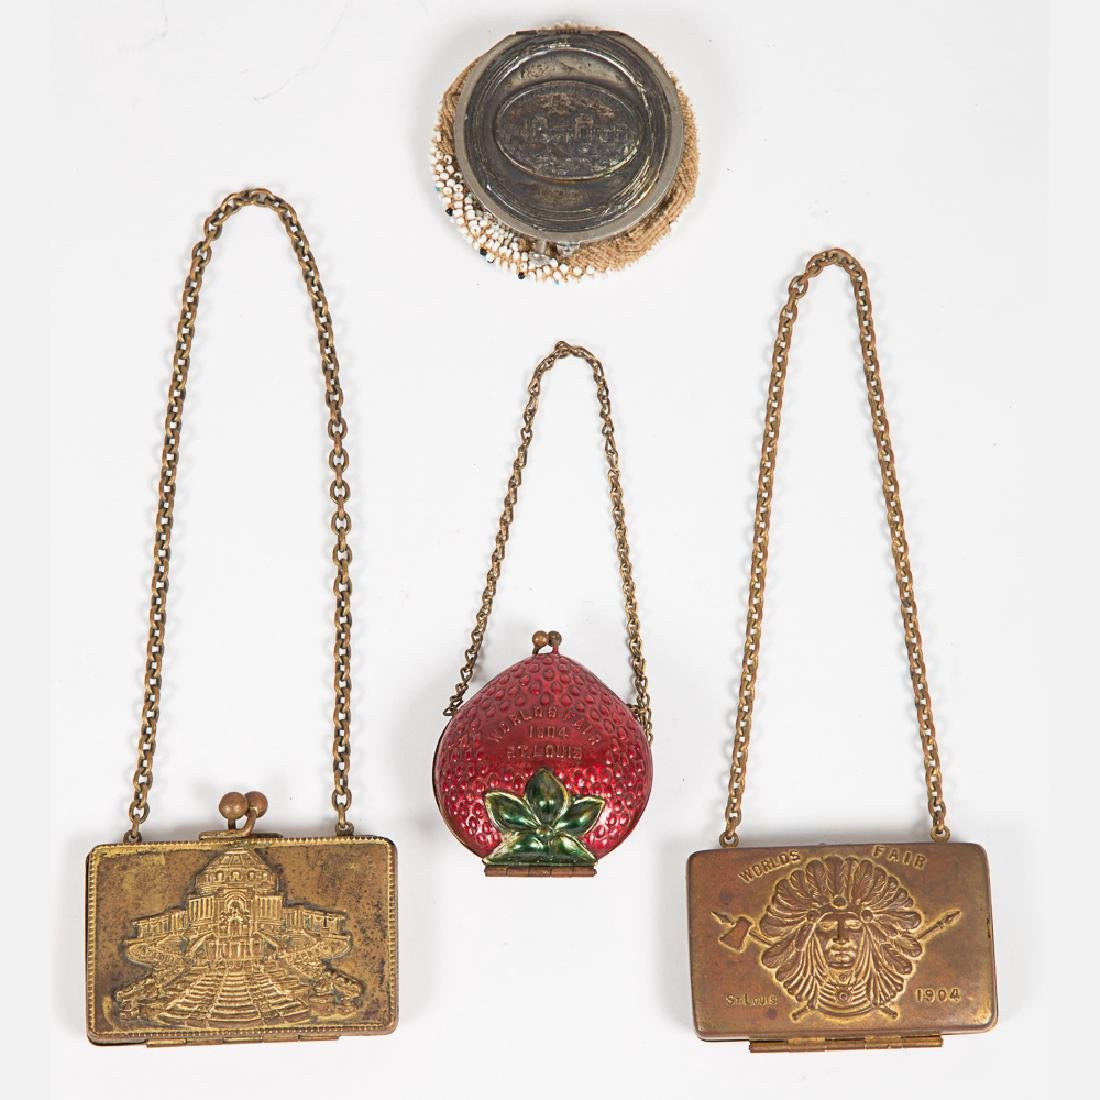 A Group of Five Metal, Beaded and Leather Coin Purses